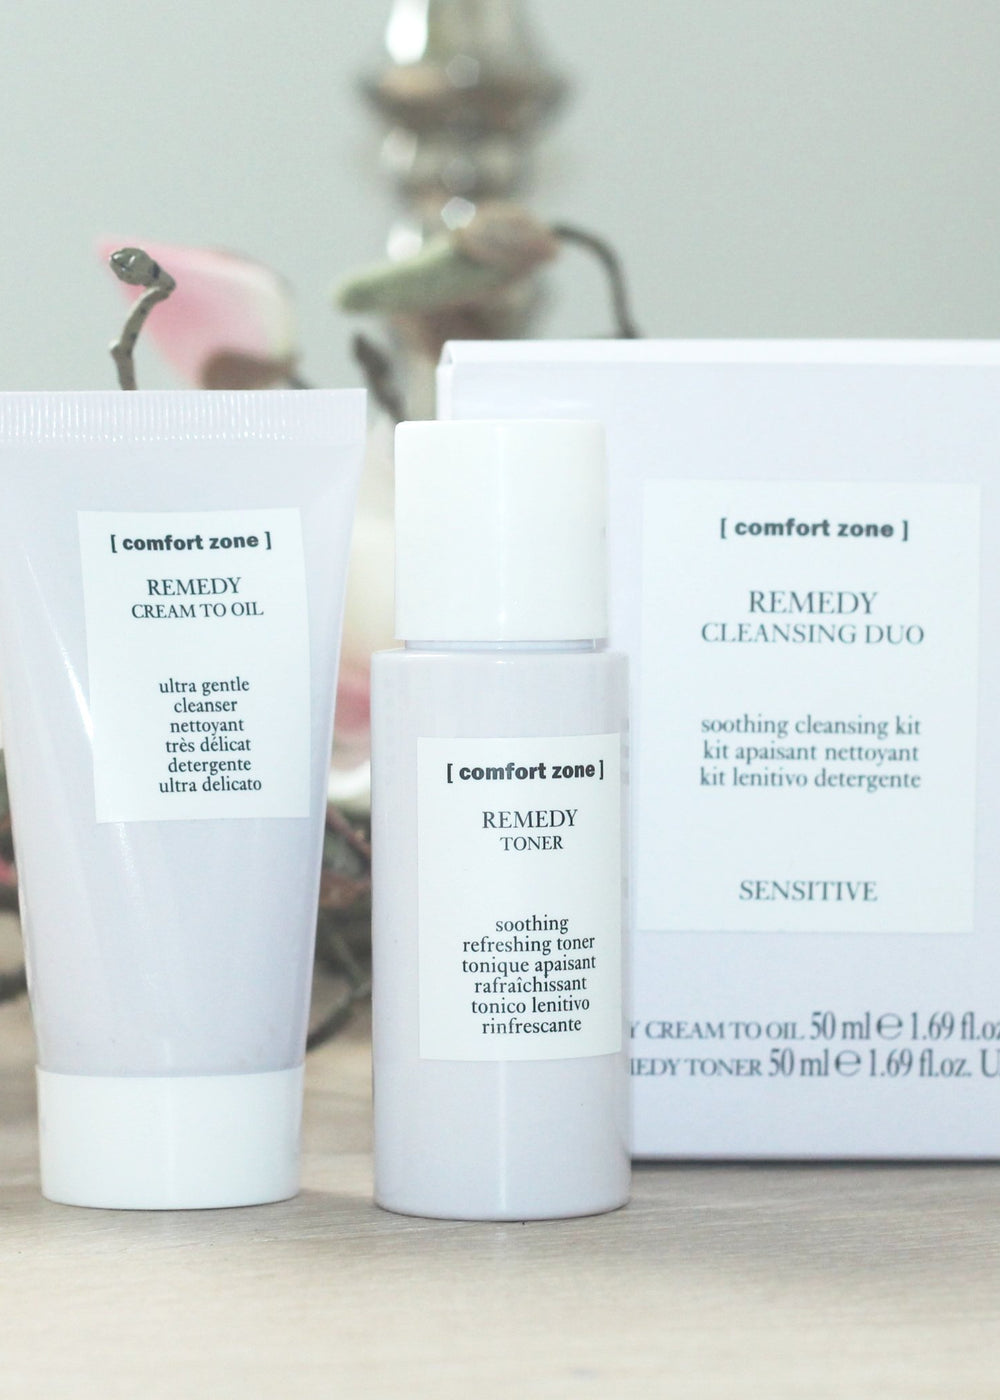 [comfort zone] REMEDY Cleansing Duo